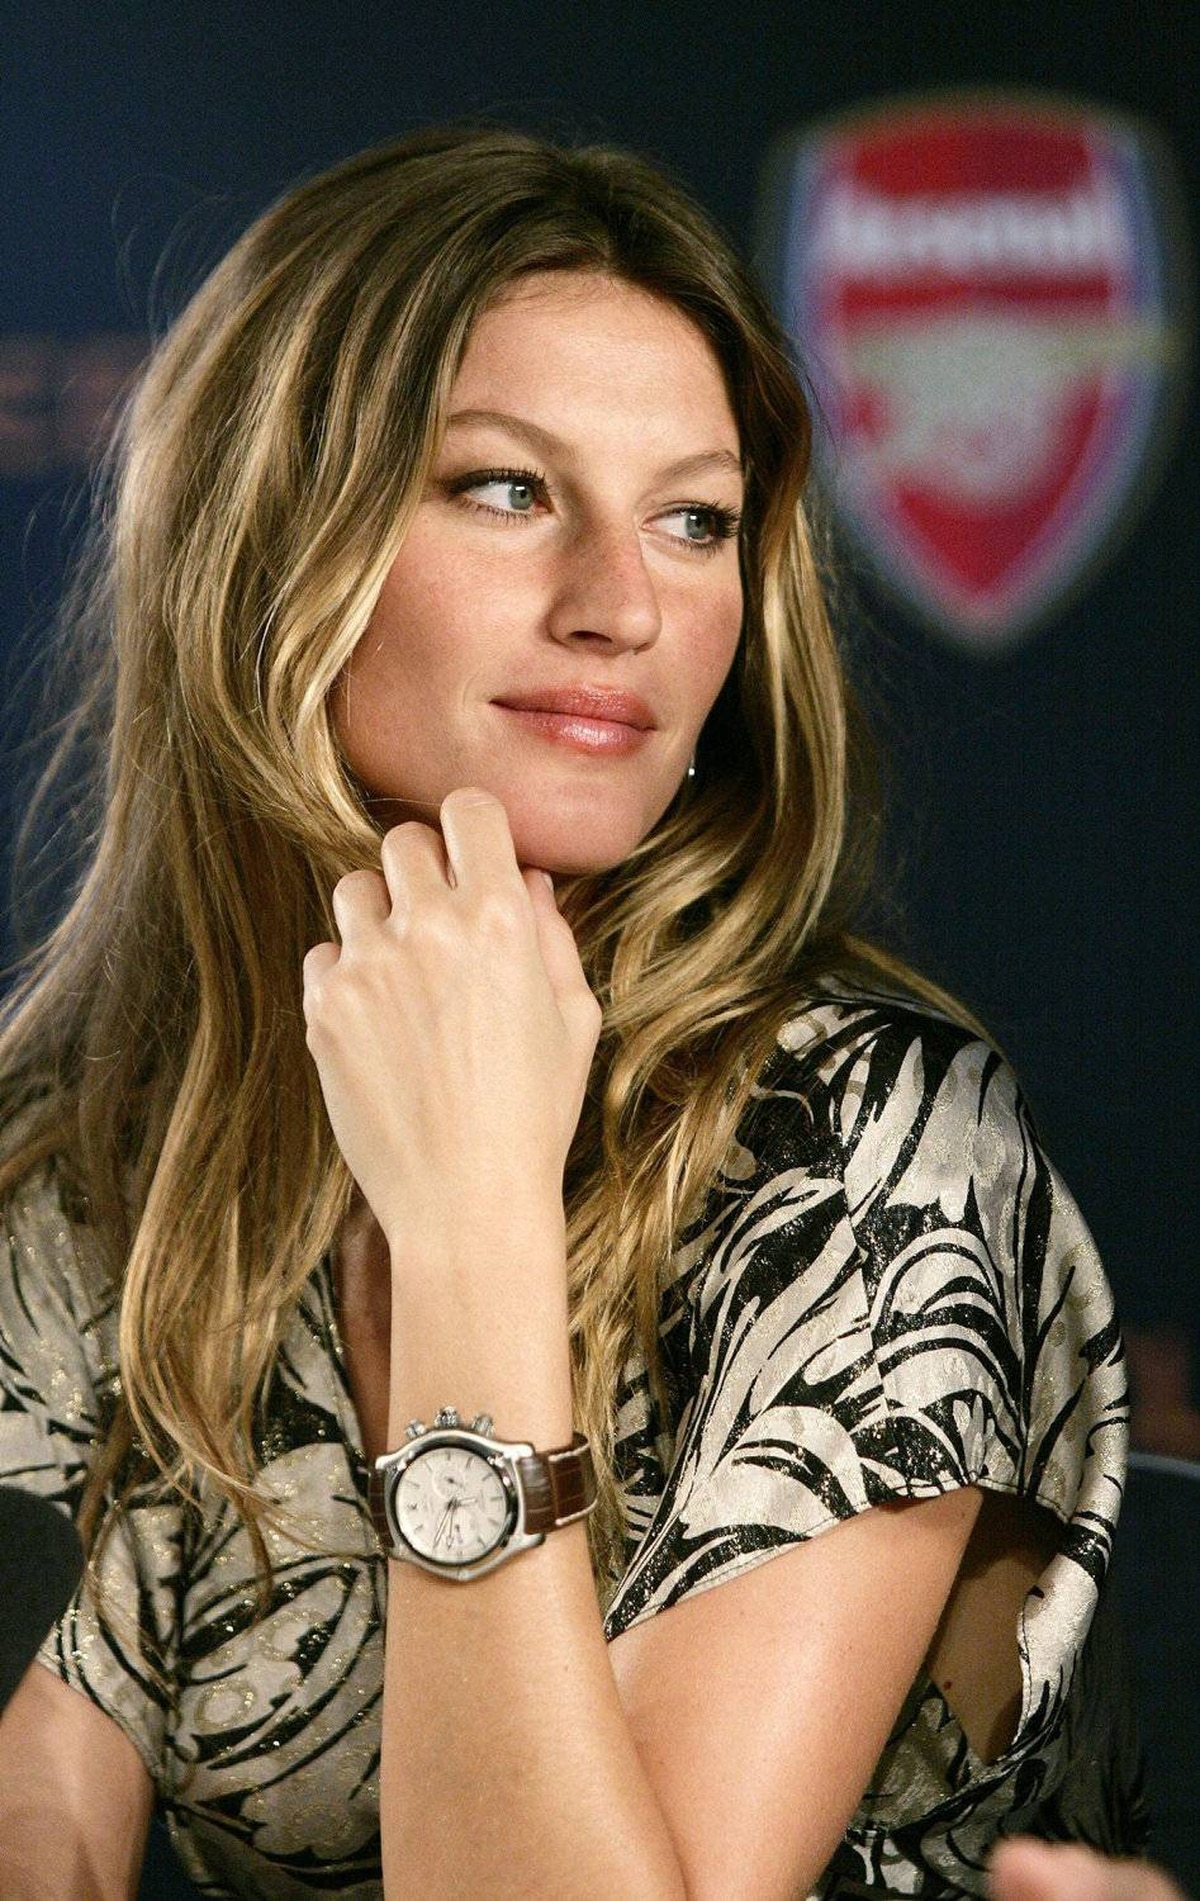 GISELE BUNDCHEN 'Giving birth was the most intense and life-changing experience of my life. ... I was so present to witness the biggest miracle in my life happen before my very own eyes. To give life to another being – what a gift!' Source: Hollyscoop